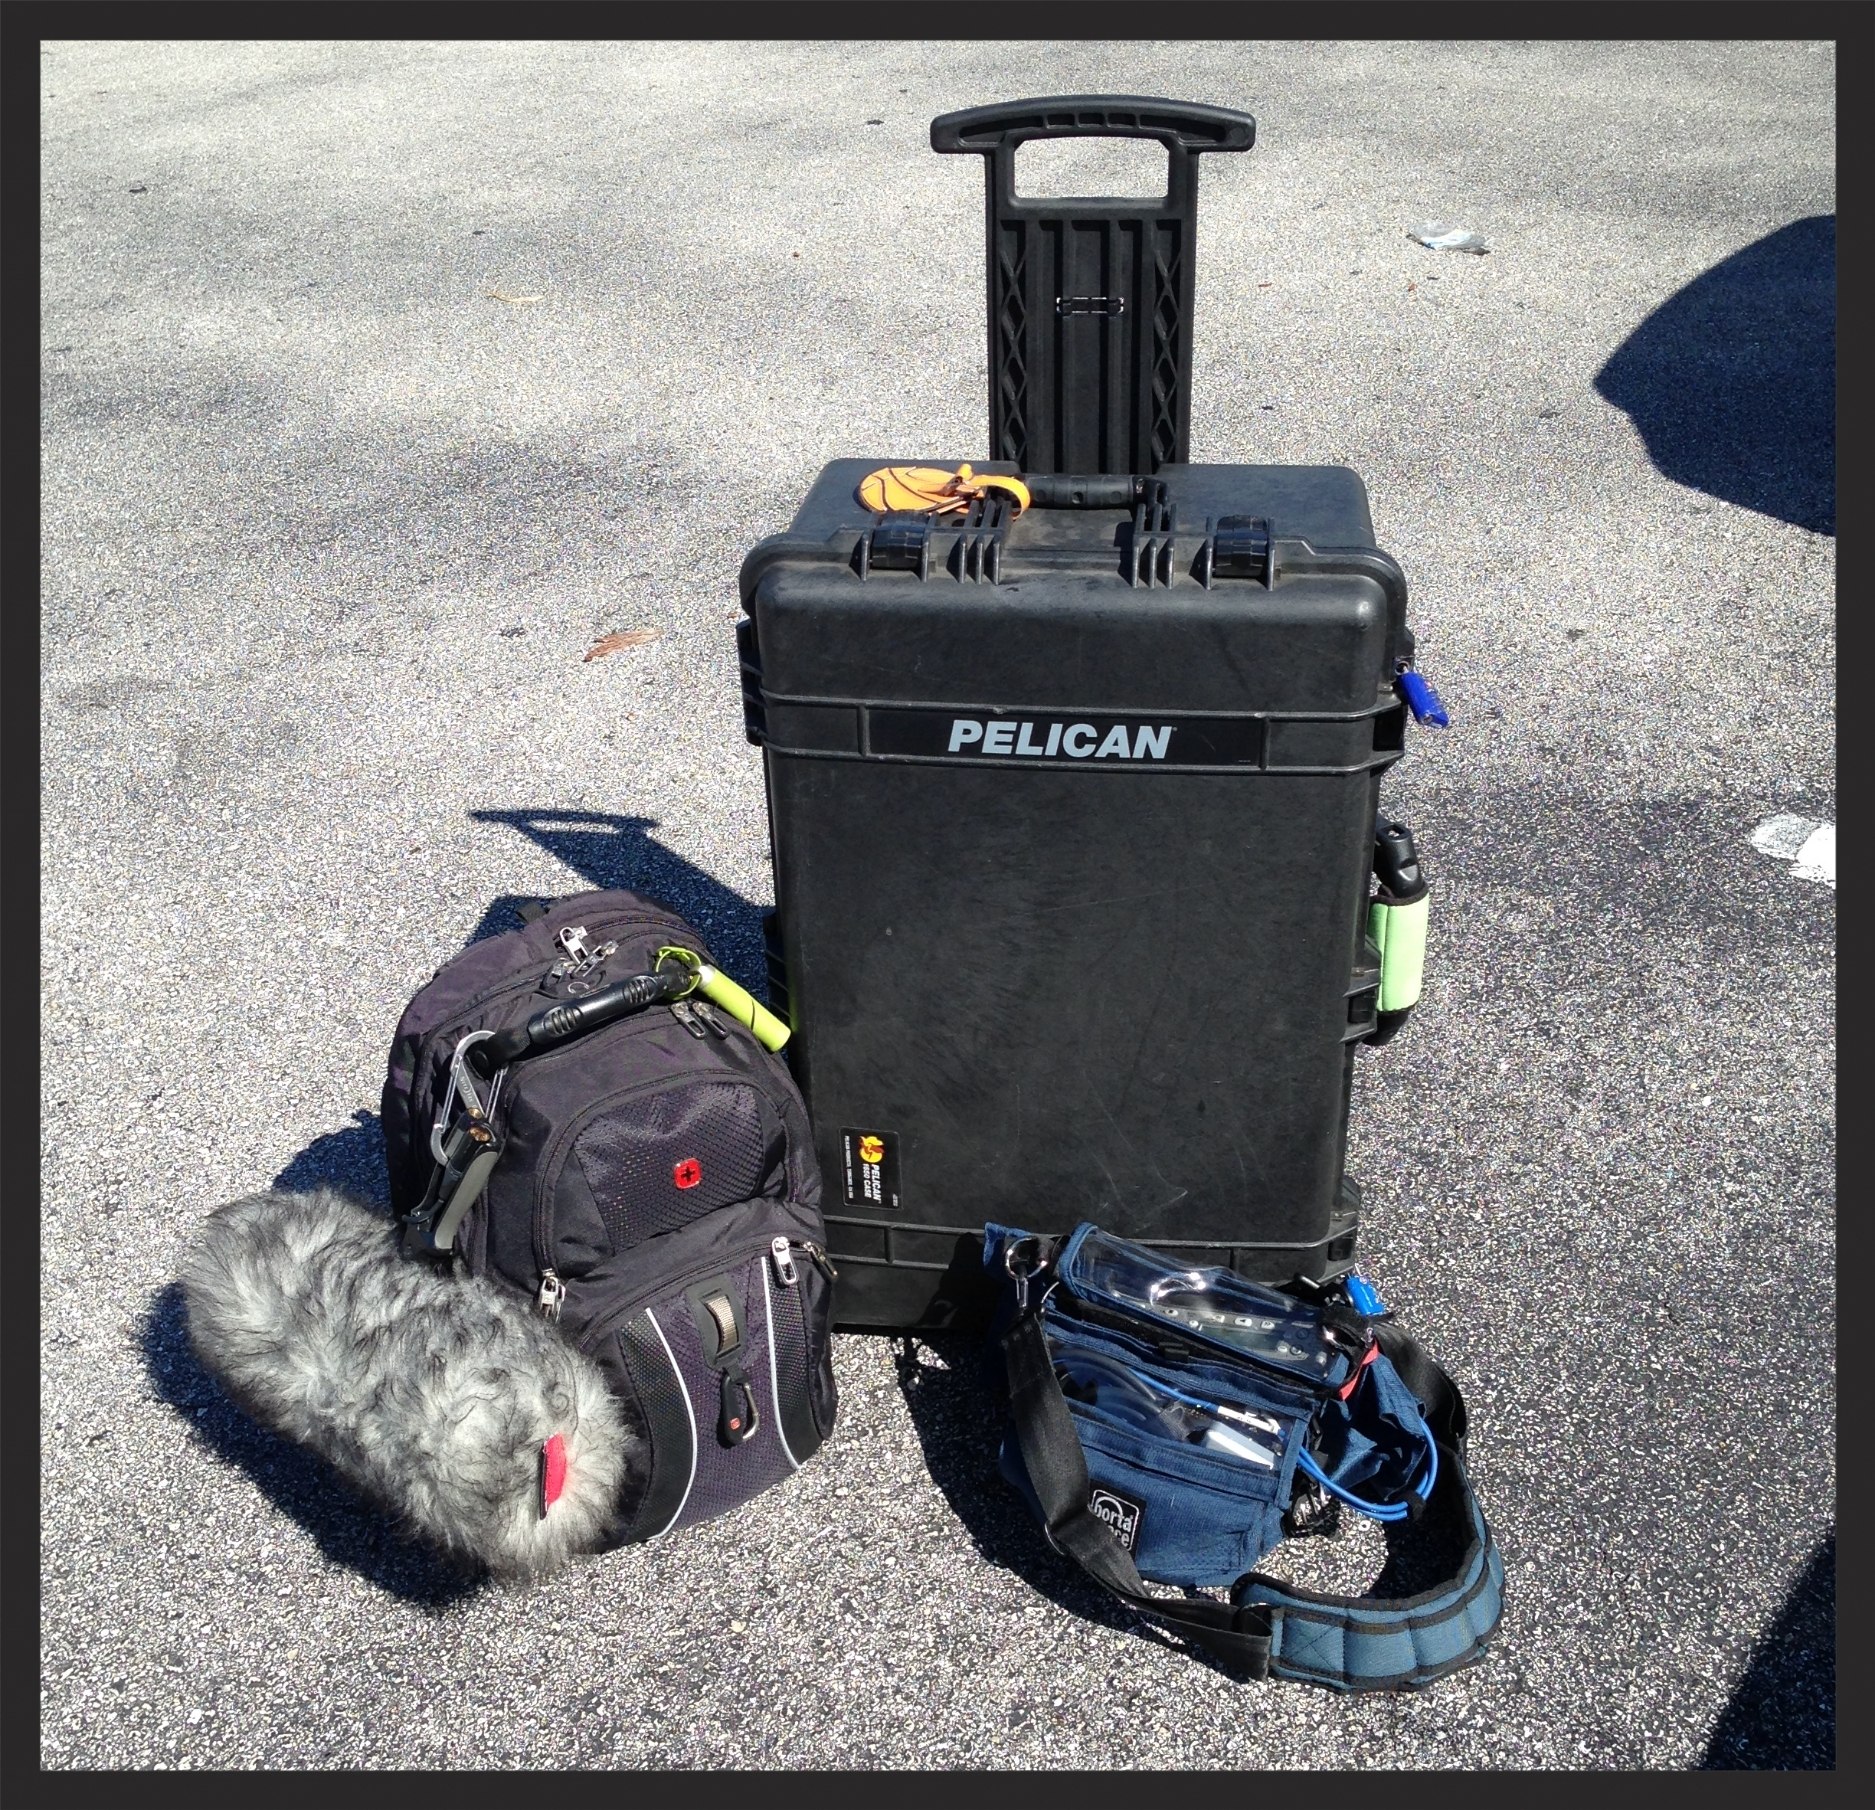 In this picture are a Rycote Windshield Kit #4, a large Swiss backpack, a PortaBrace audio bag, and a monster size Pelican 1650 case.  The purpose of this setup is to divide up my equipment. All items outside of the Pelican 1650 case are my primary gear. They are a Sound Devices 744T/MixPre-D inside the PortaBrace bag, my numerous mics, batteries, primary chargers, a camera, gaffers tape, etc all inside the large Swiss backpack.  Inside the Pelican 1650 case, there is a backup 4 track recorder, more batteries, mic stands, cables, zip ties, gaffers tape, clothes, etc items.  I HIGHLY recommend dividing up your precious gear similar to this. Remember to Always have a backup just in case something happens to your primary gear! This applies to other industries such as photography, videography, IT, etc. Stay safe and please share your stories. :-)